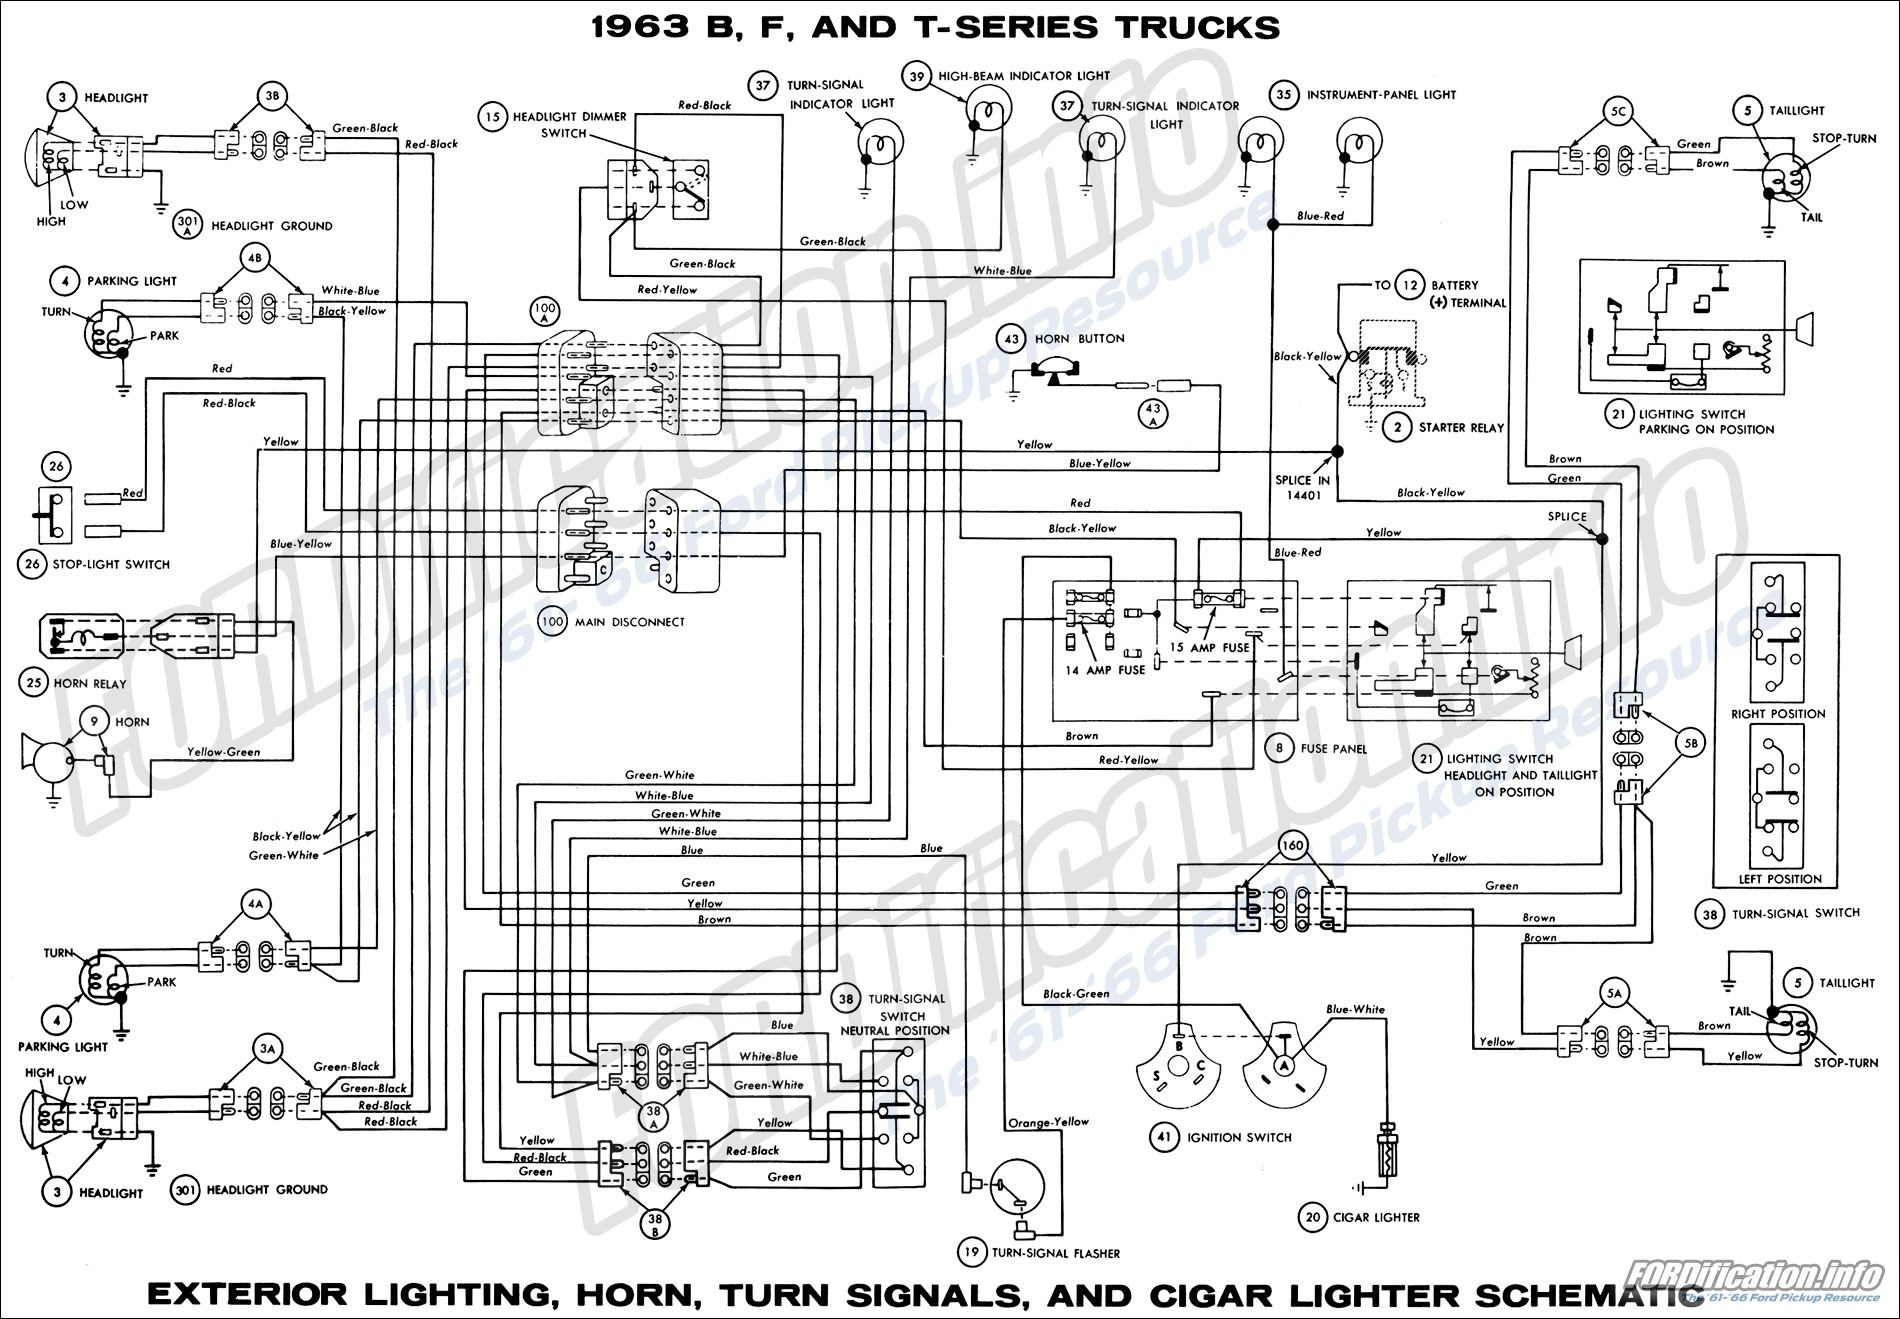 Ford Van Turn Signal Wire Diagram -96 F350 Fuse Diagram | Begeboy Wiring  Diagram SourceBegeboy Wiring Diagram Source